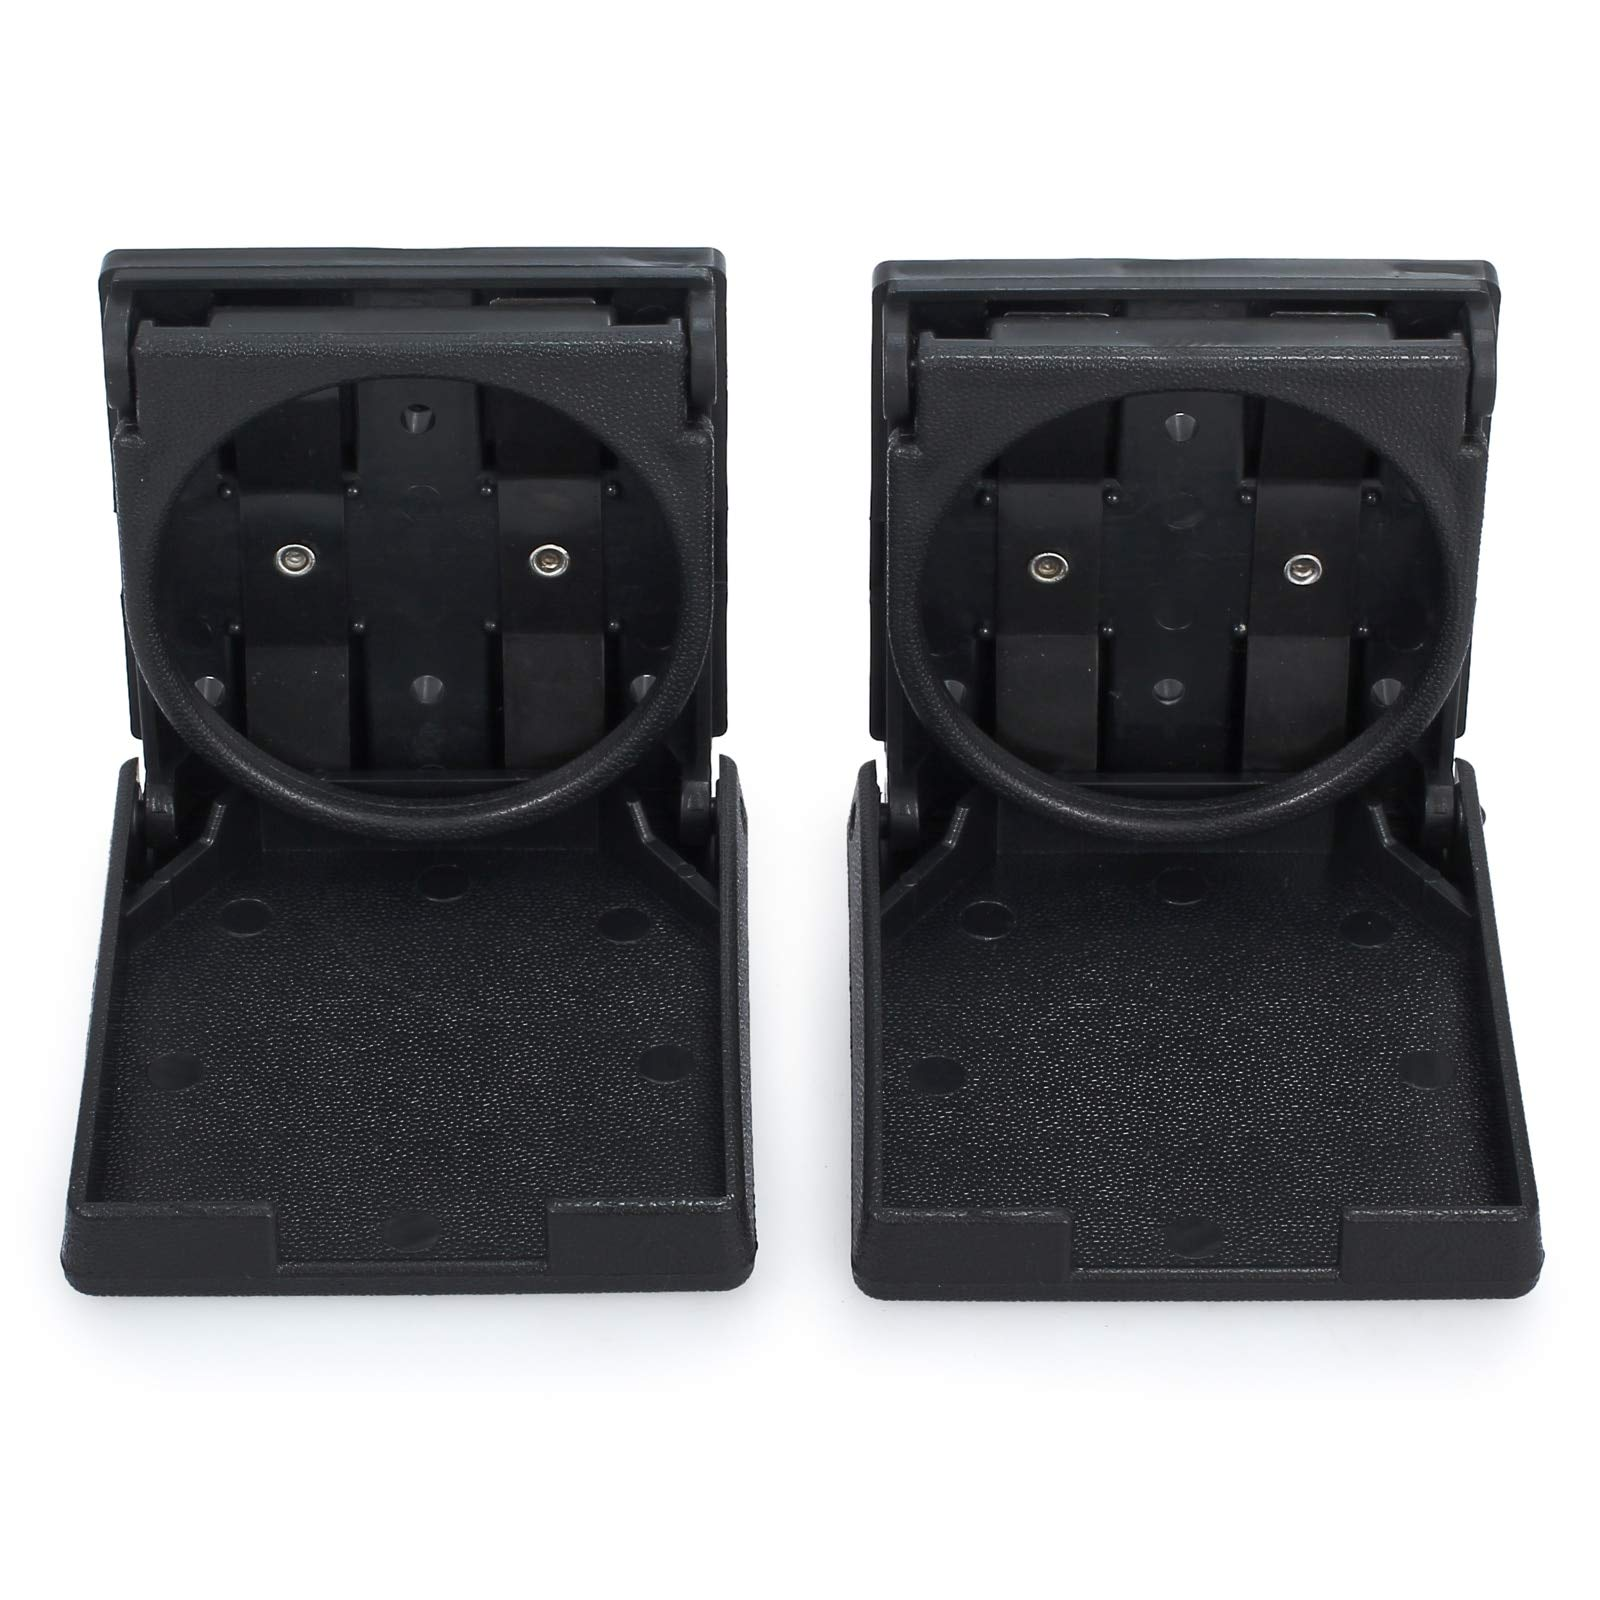 SHA Cup Holder Table for Car - 2Pieces Folding Cup Holder Plastic Beverage Drinking Foldable Cup Holders for Car Truck Van Marine Boat Foosball Table Accessory 1 PCs